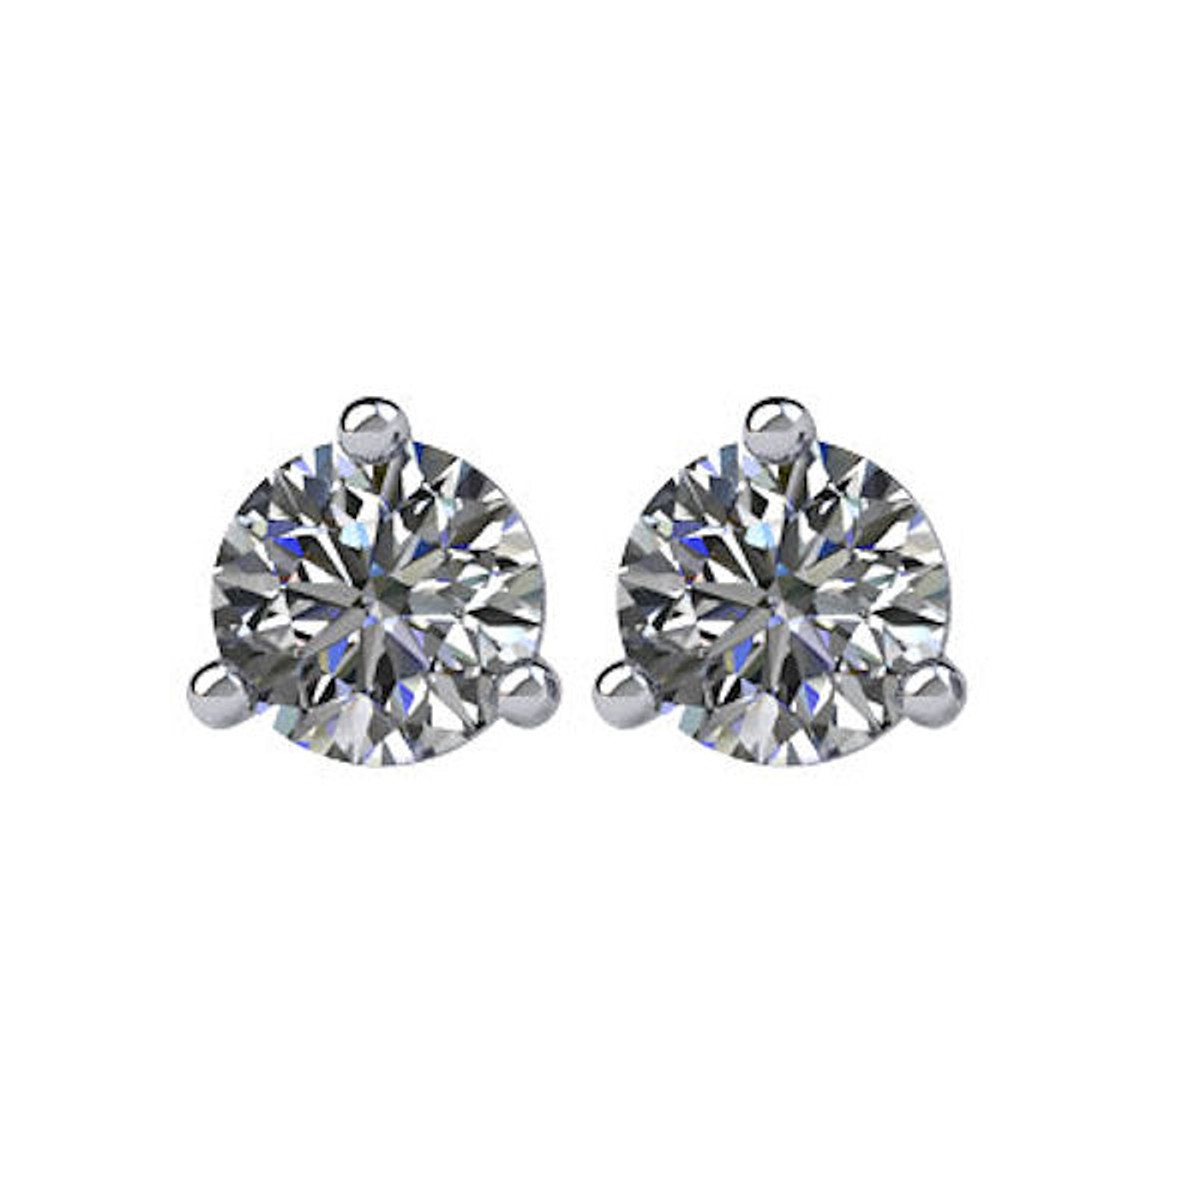 3-Prong Cocktail Round 1/5 CT TW Earrings